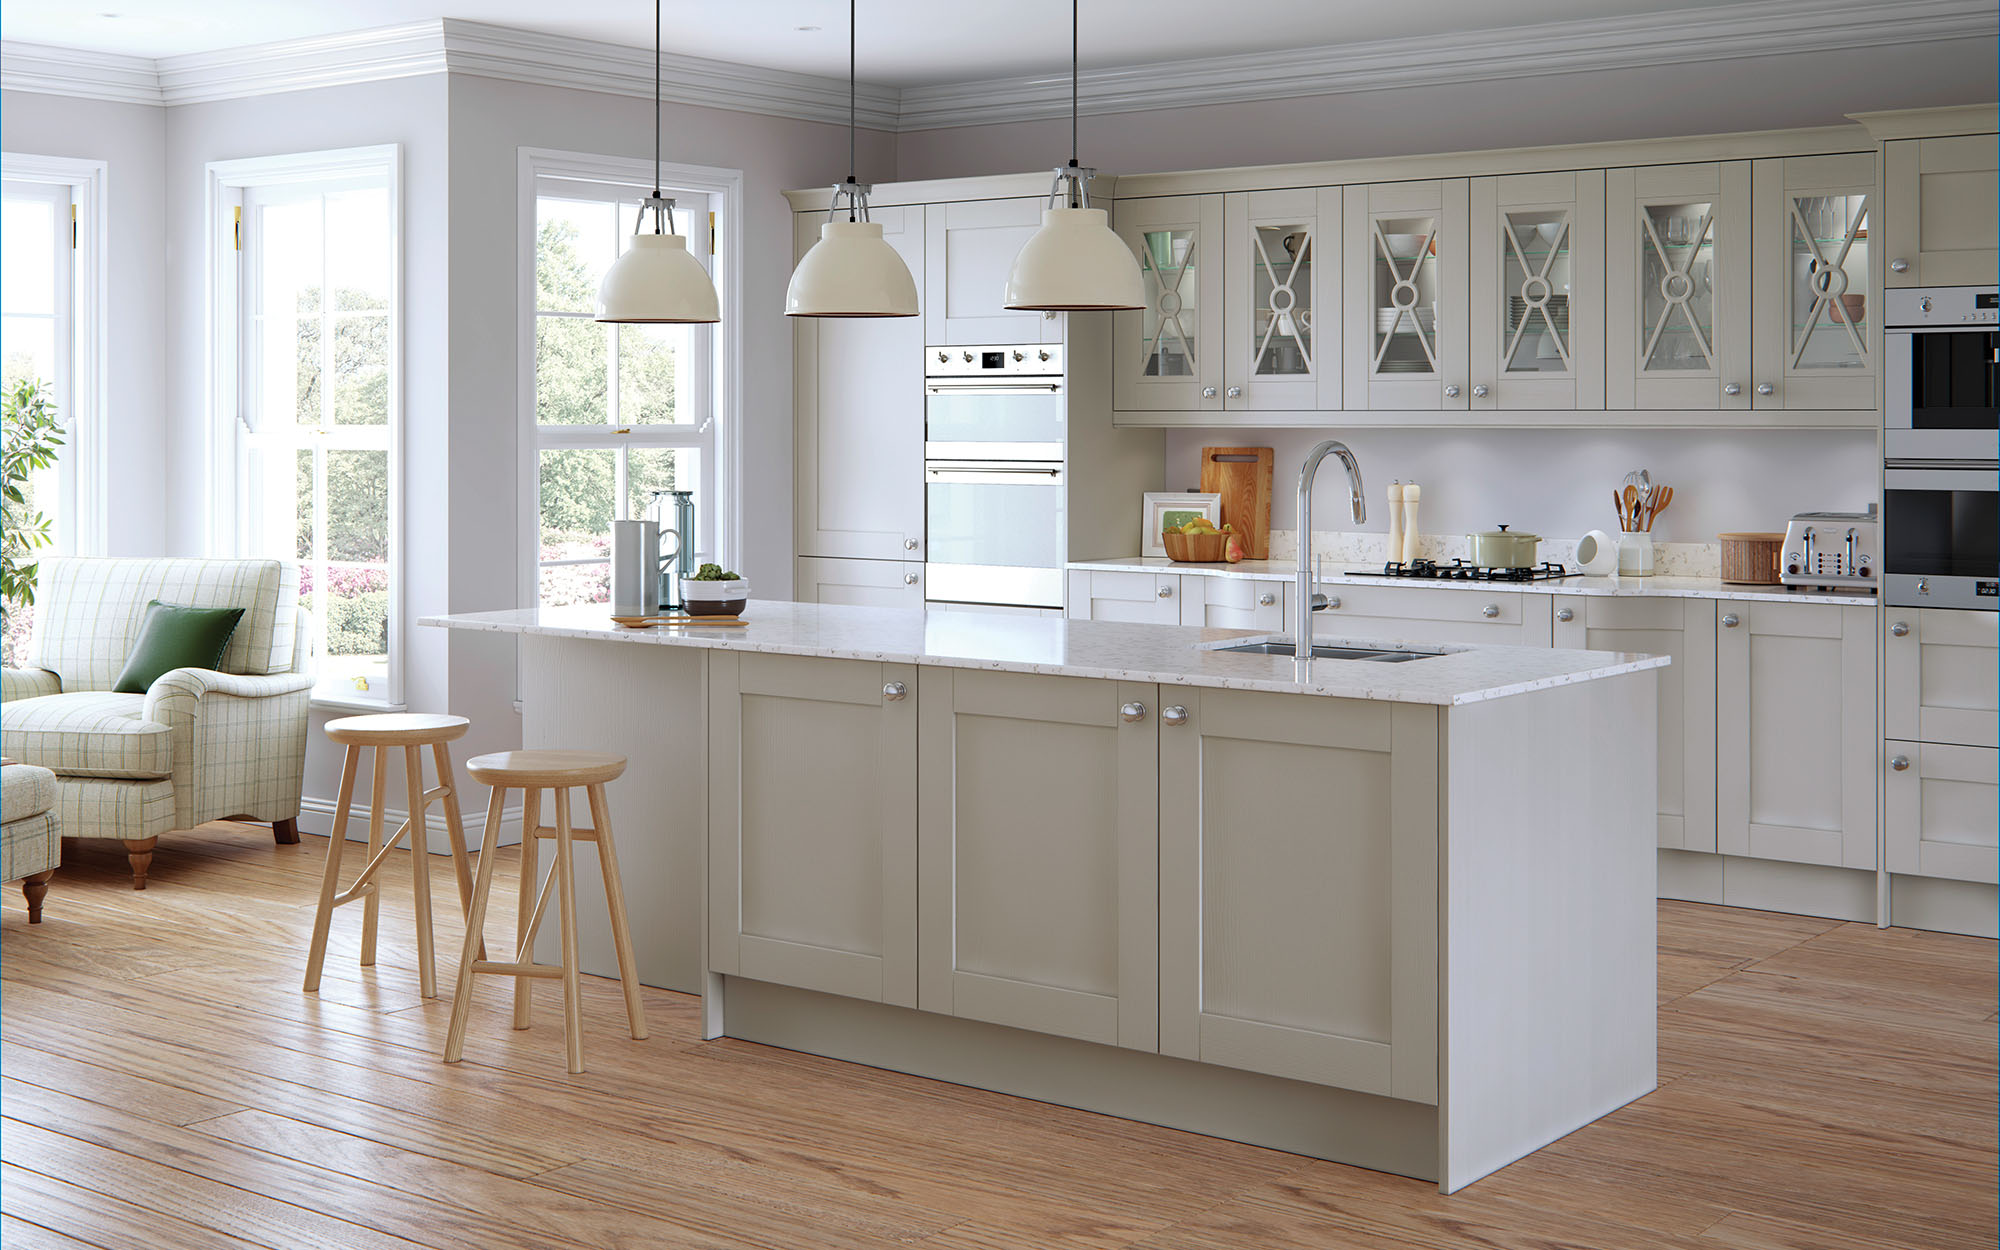 Shaker kitchen doors madison painted light grey uform Kitchen design light grey